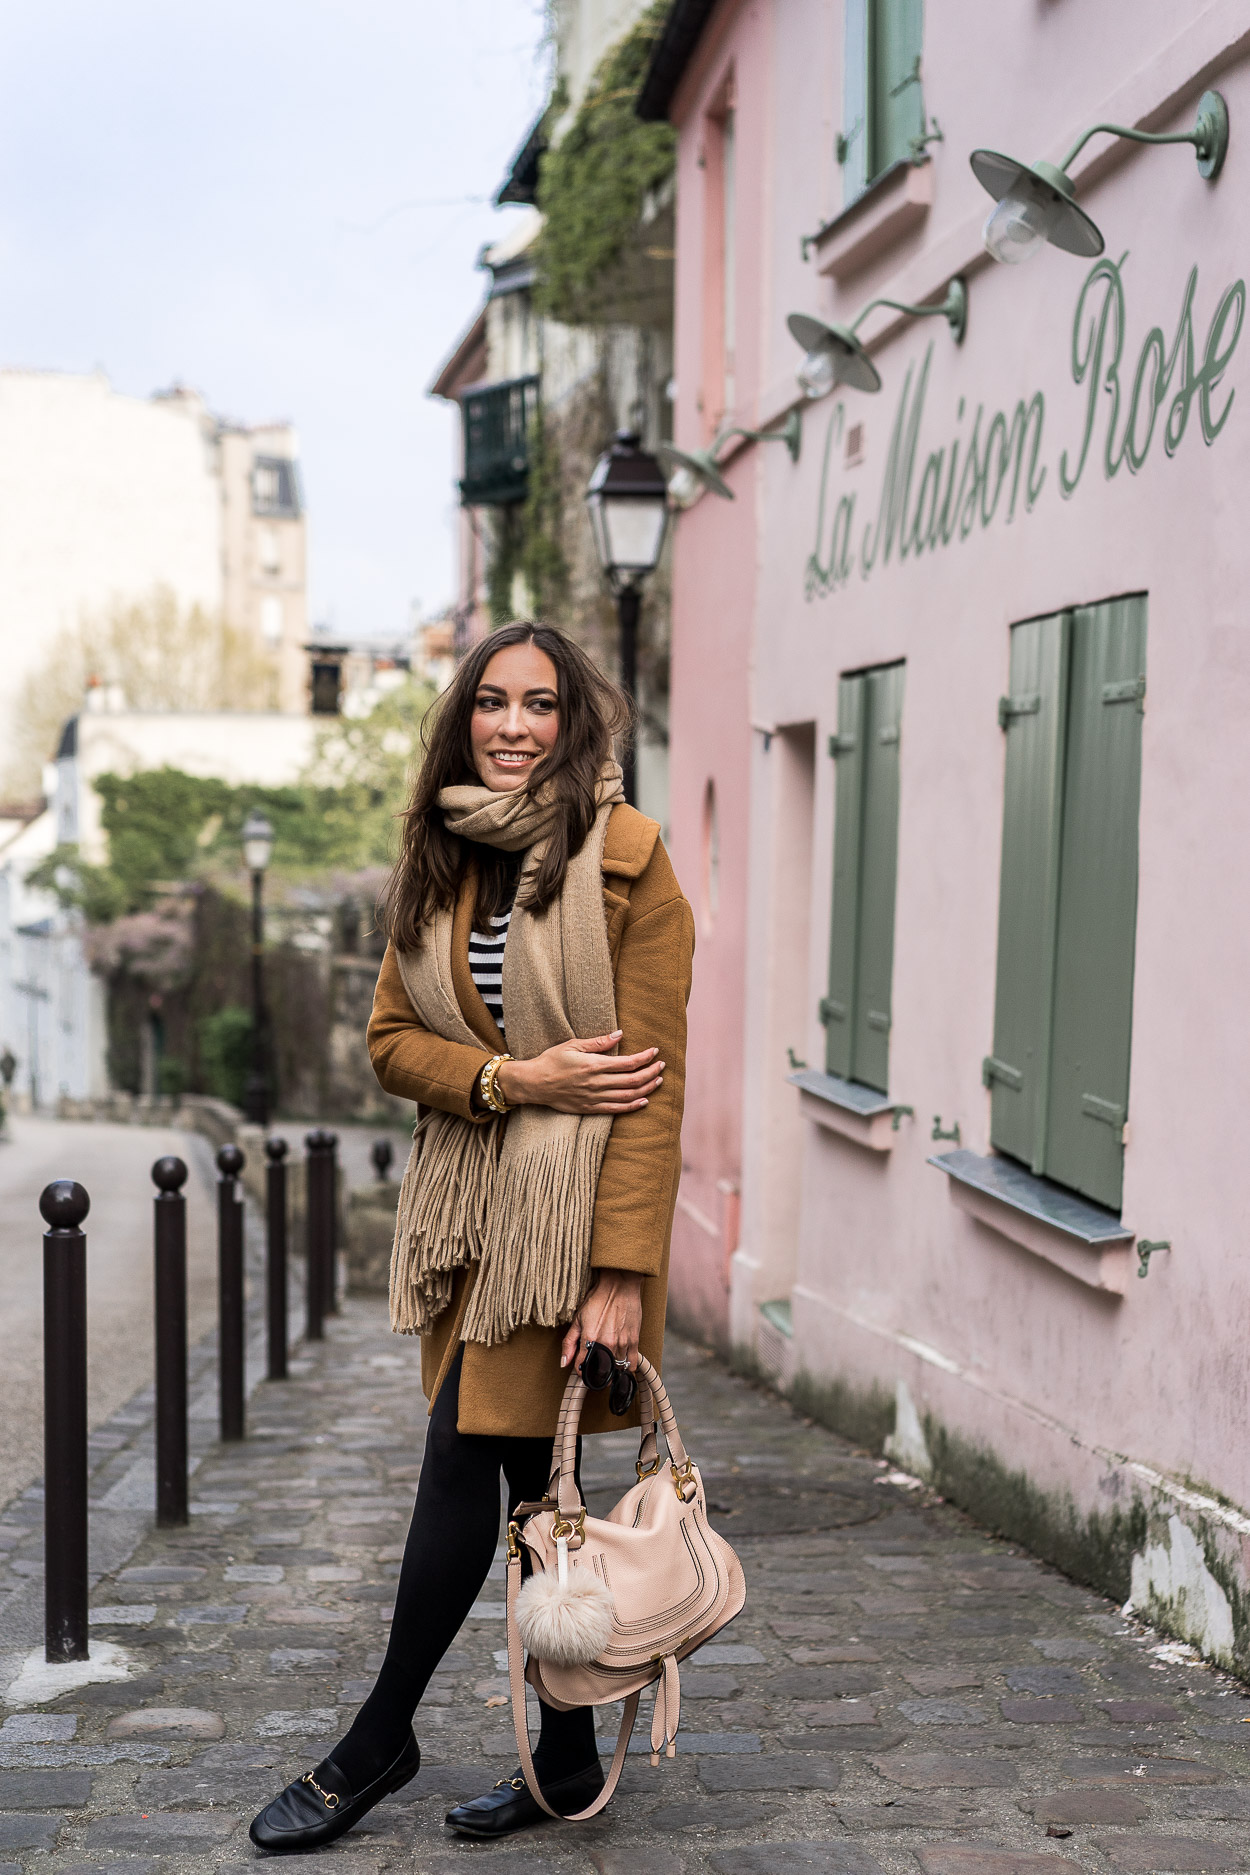 Things to do in Montmartre include dining at La Maison Rose cafe highlighted by AGlamLifestyle blogger Amanda in her tips for planning a Paris vacation